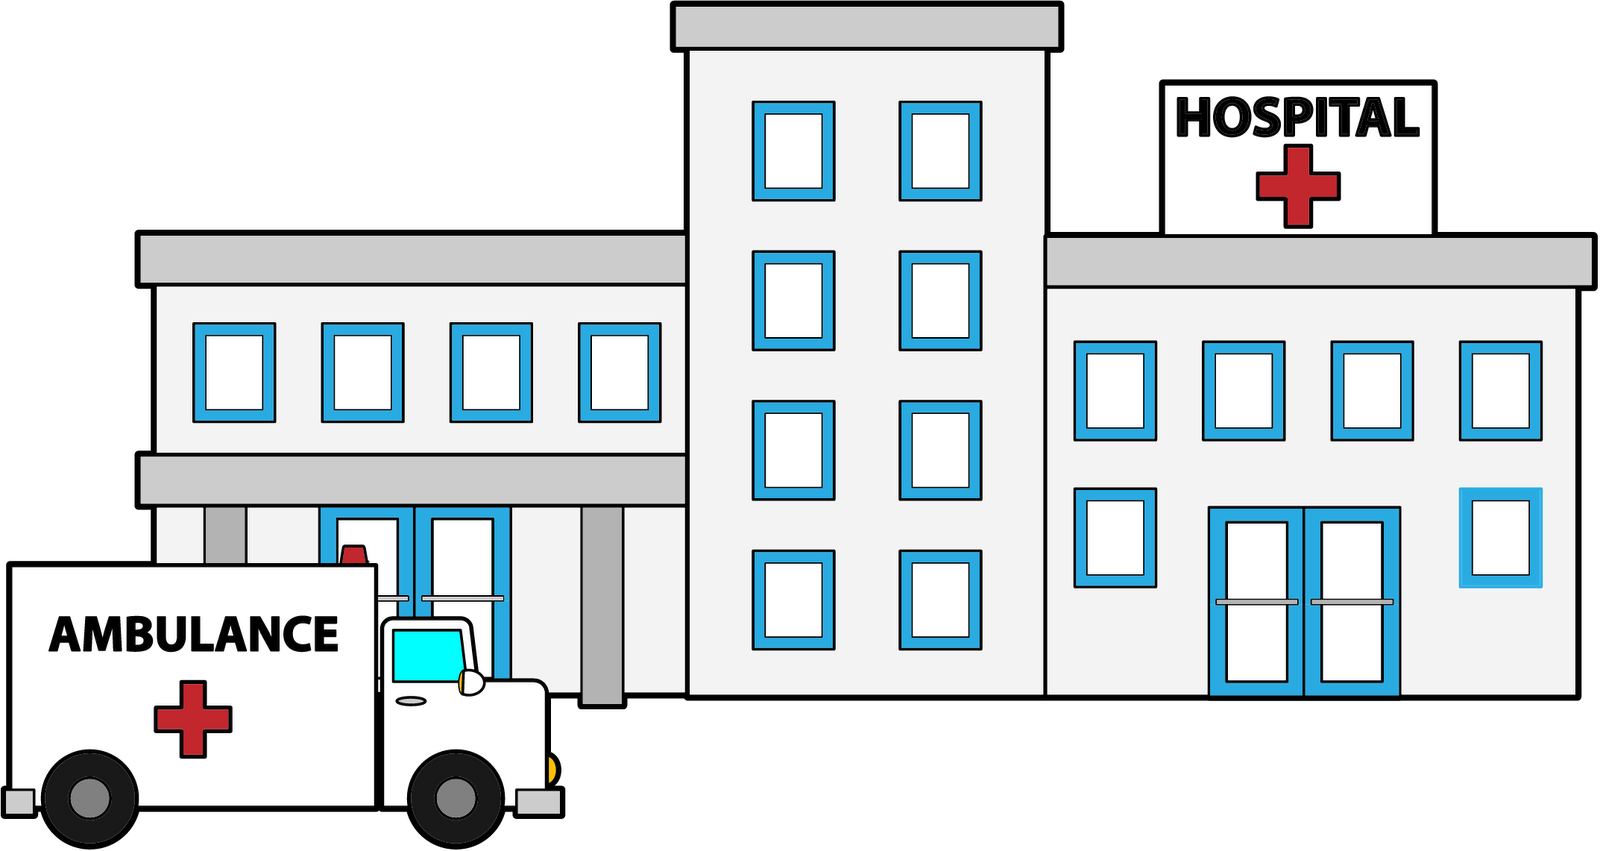 1600x851 Image Of Hospital Building Clipart 6 Hospital Clip Art Images